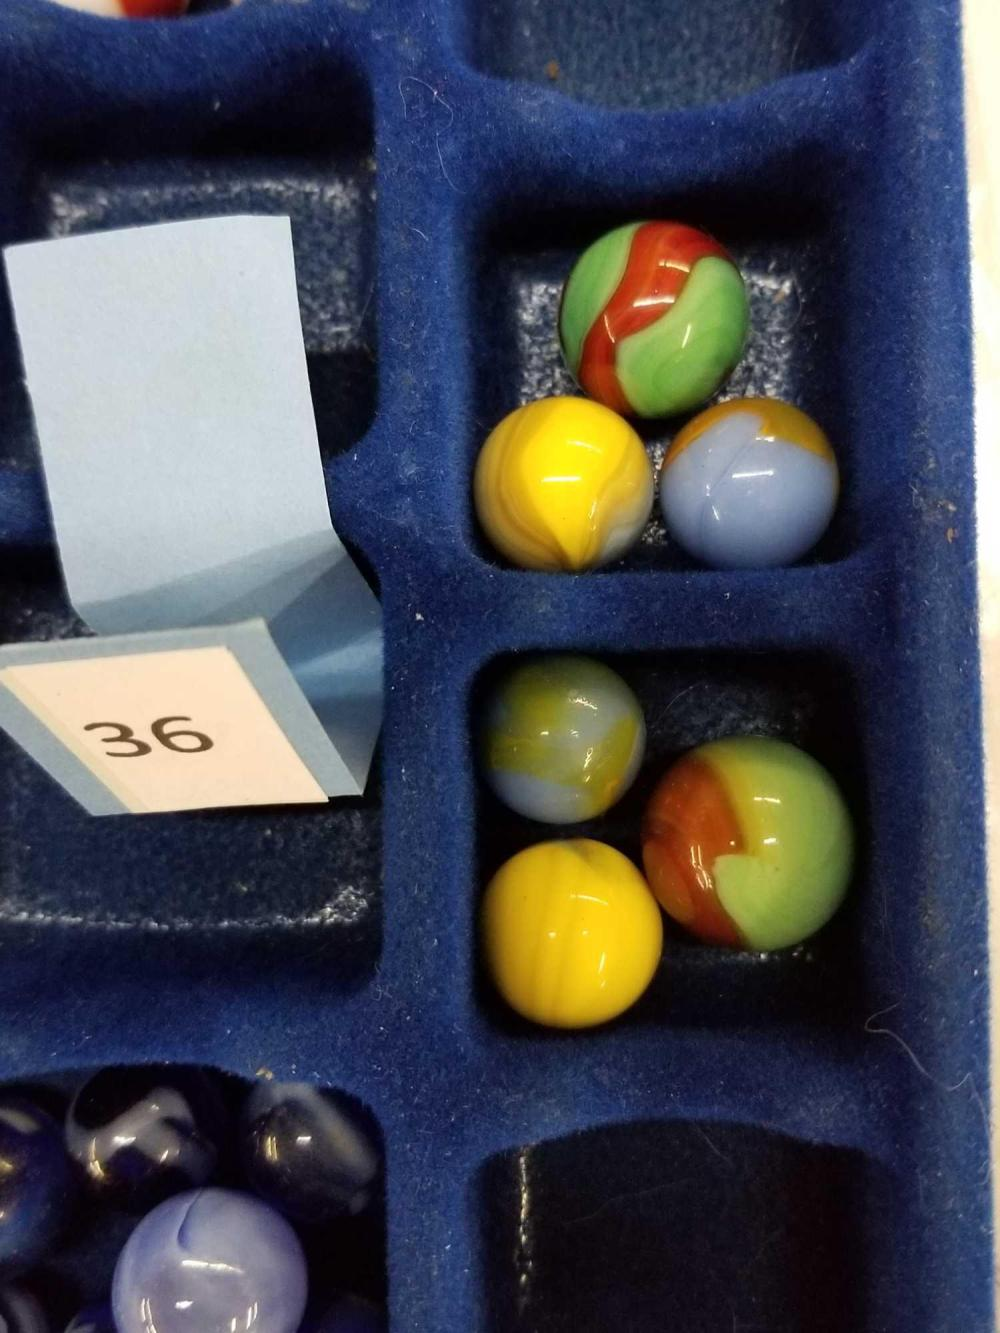 """MASTER GLASS MULTI-COLORED """"COMET"""" MARBLES - 6 ITEMS"""